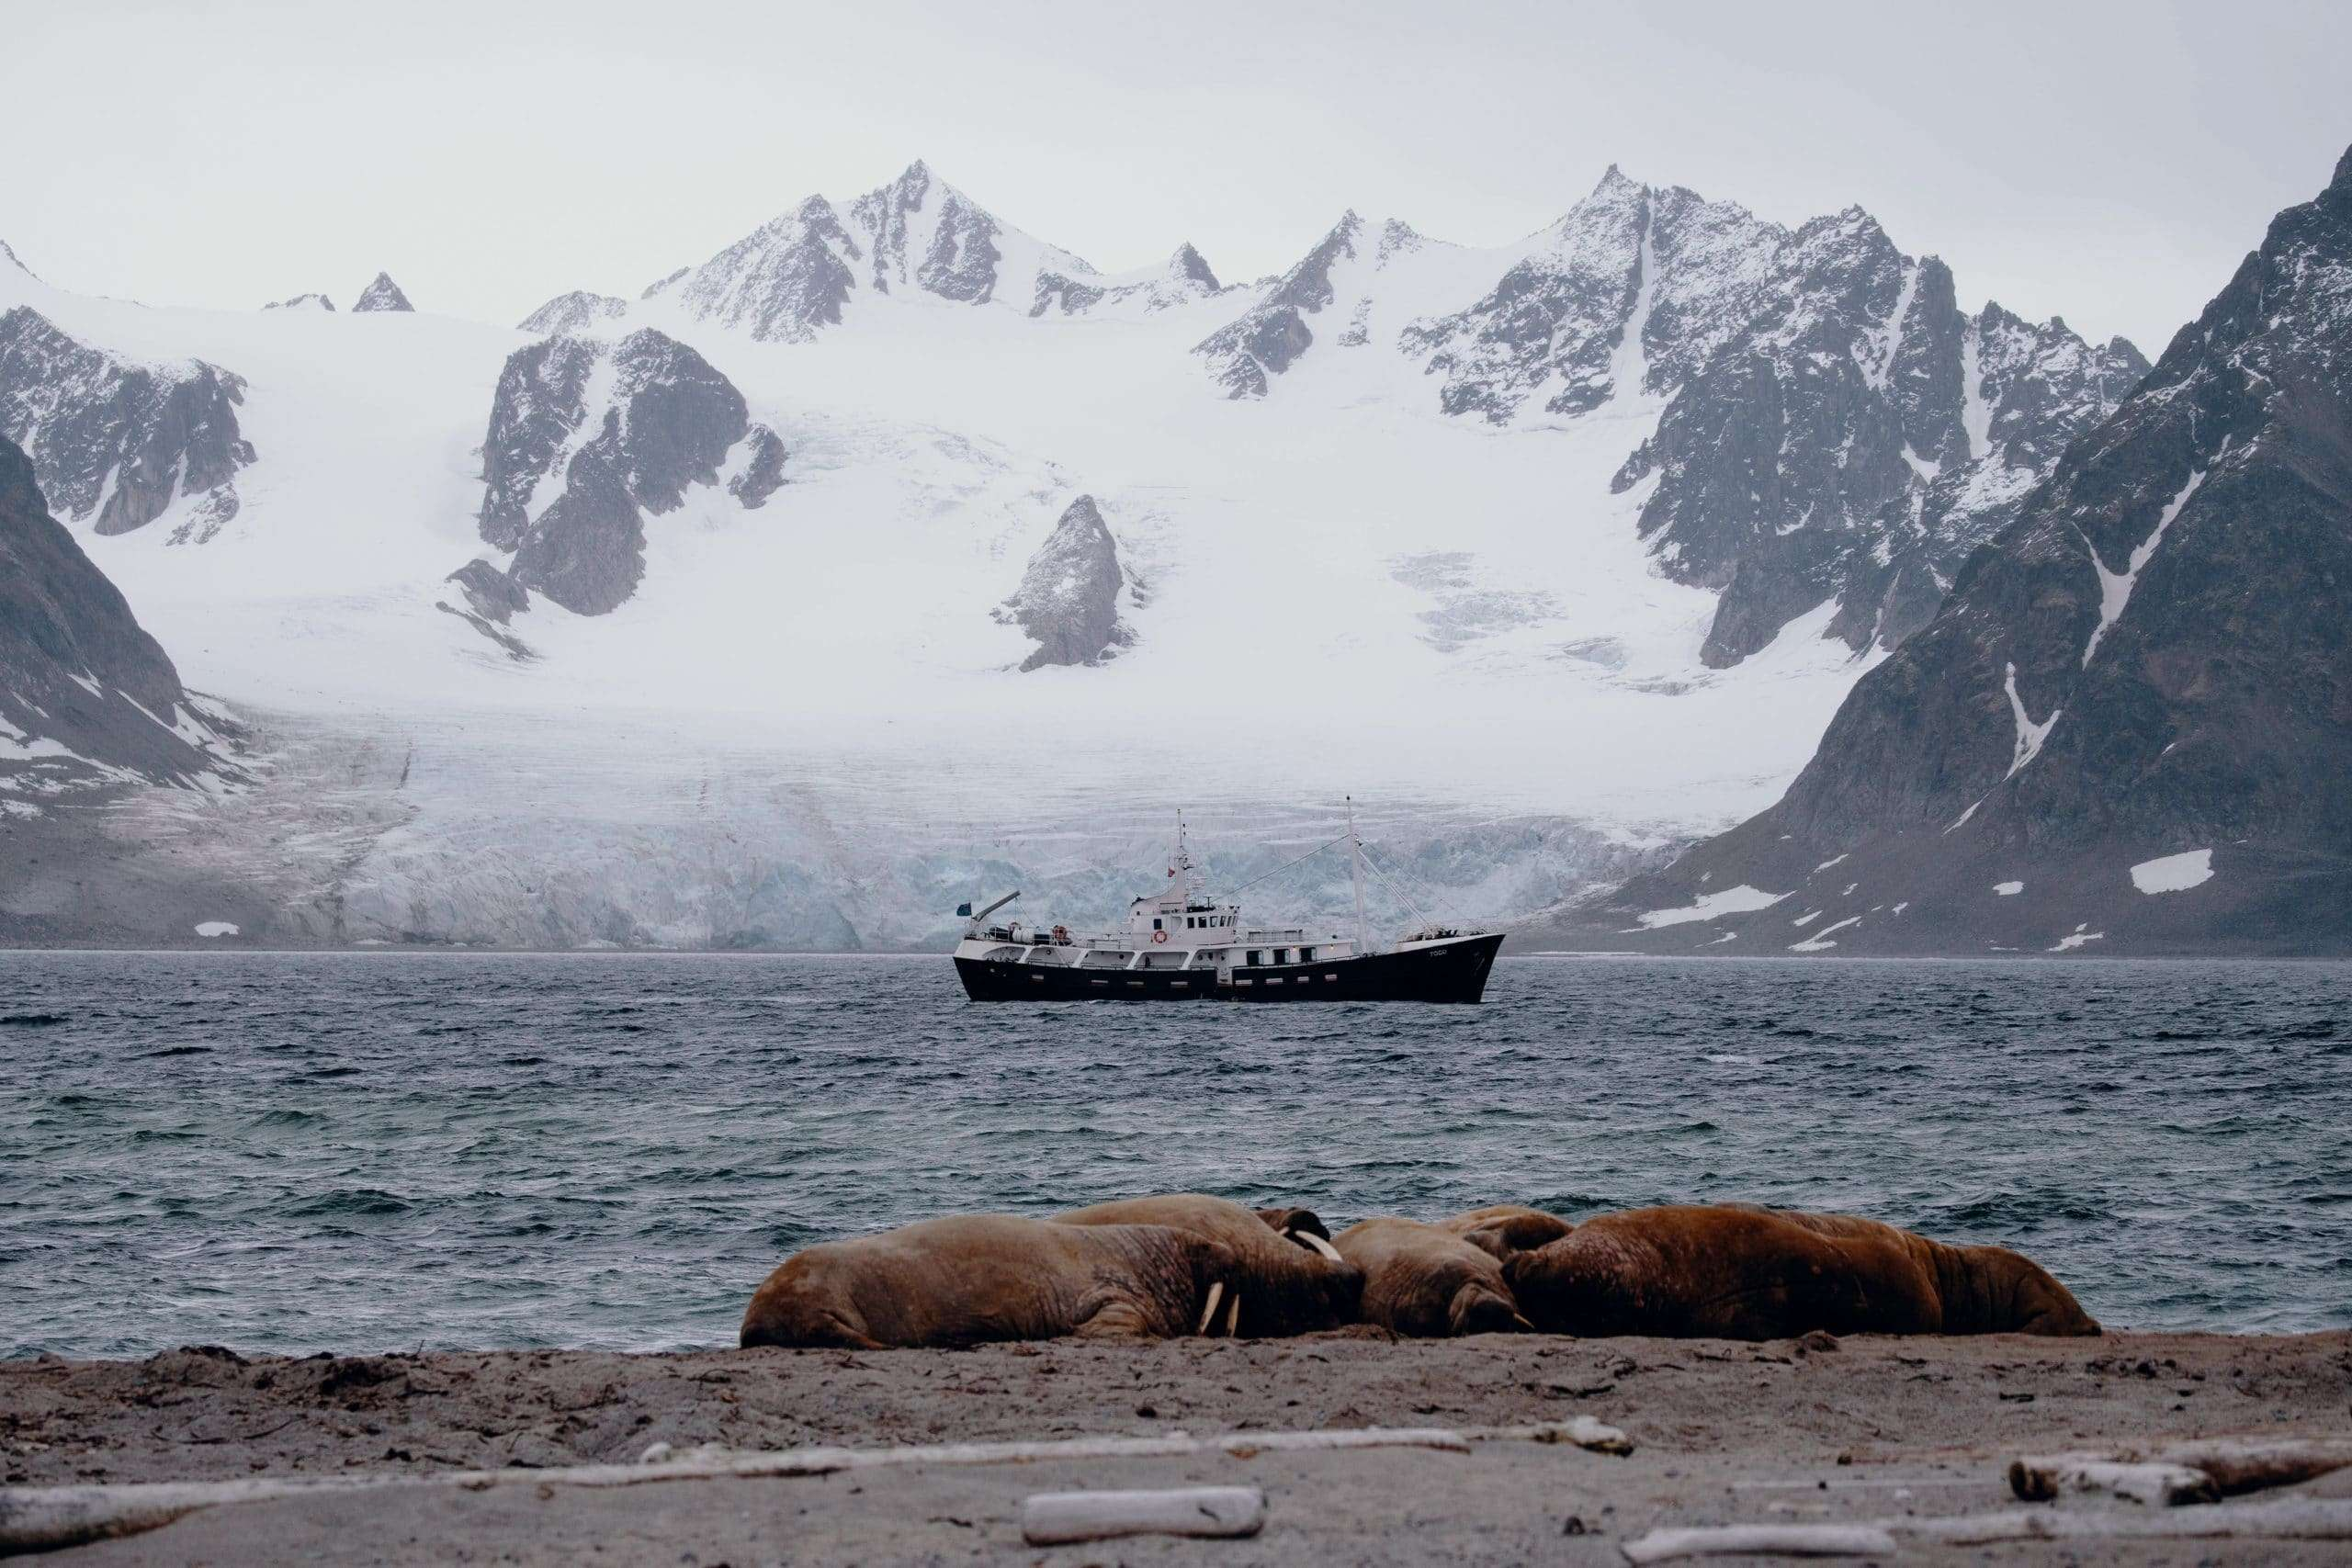 photography expedition in svalbard on a small boat